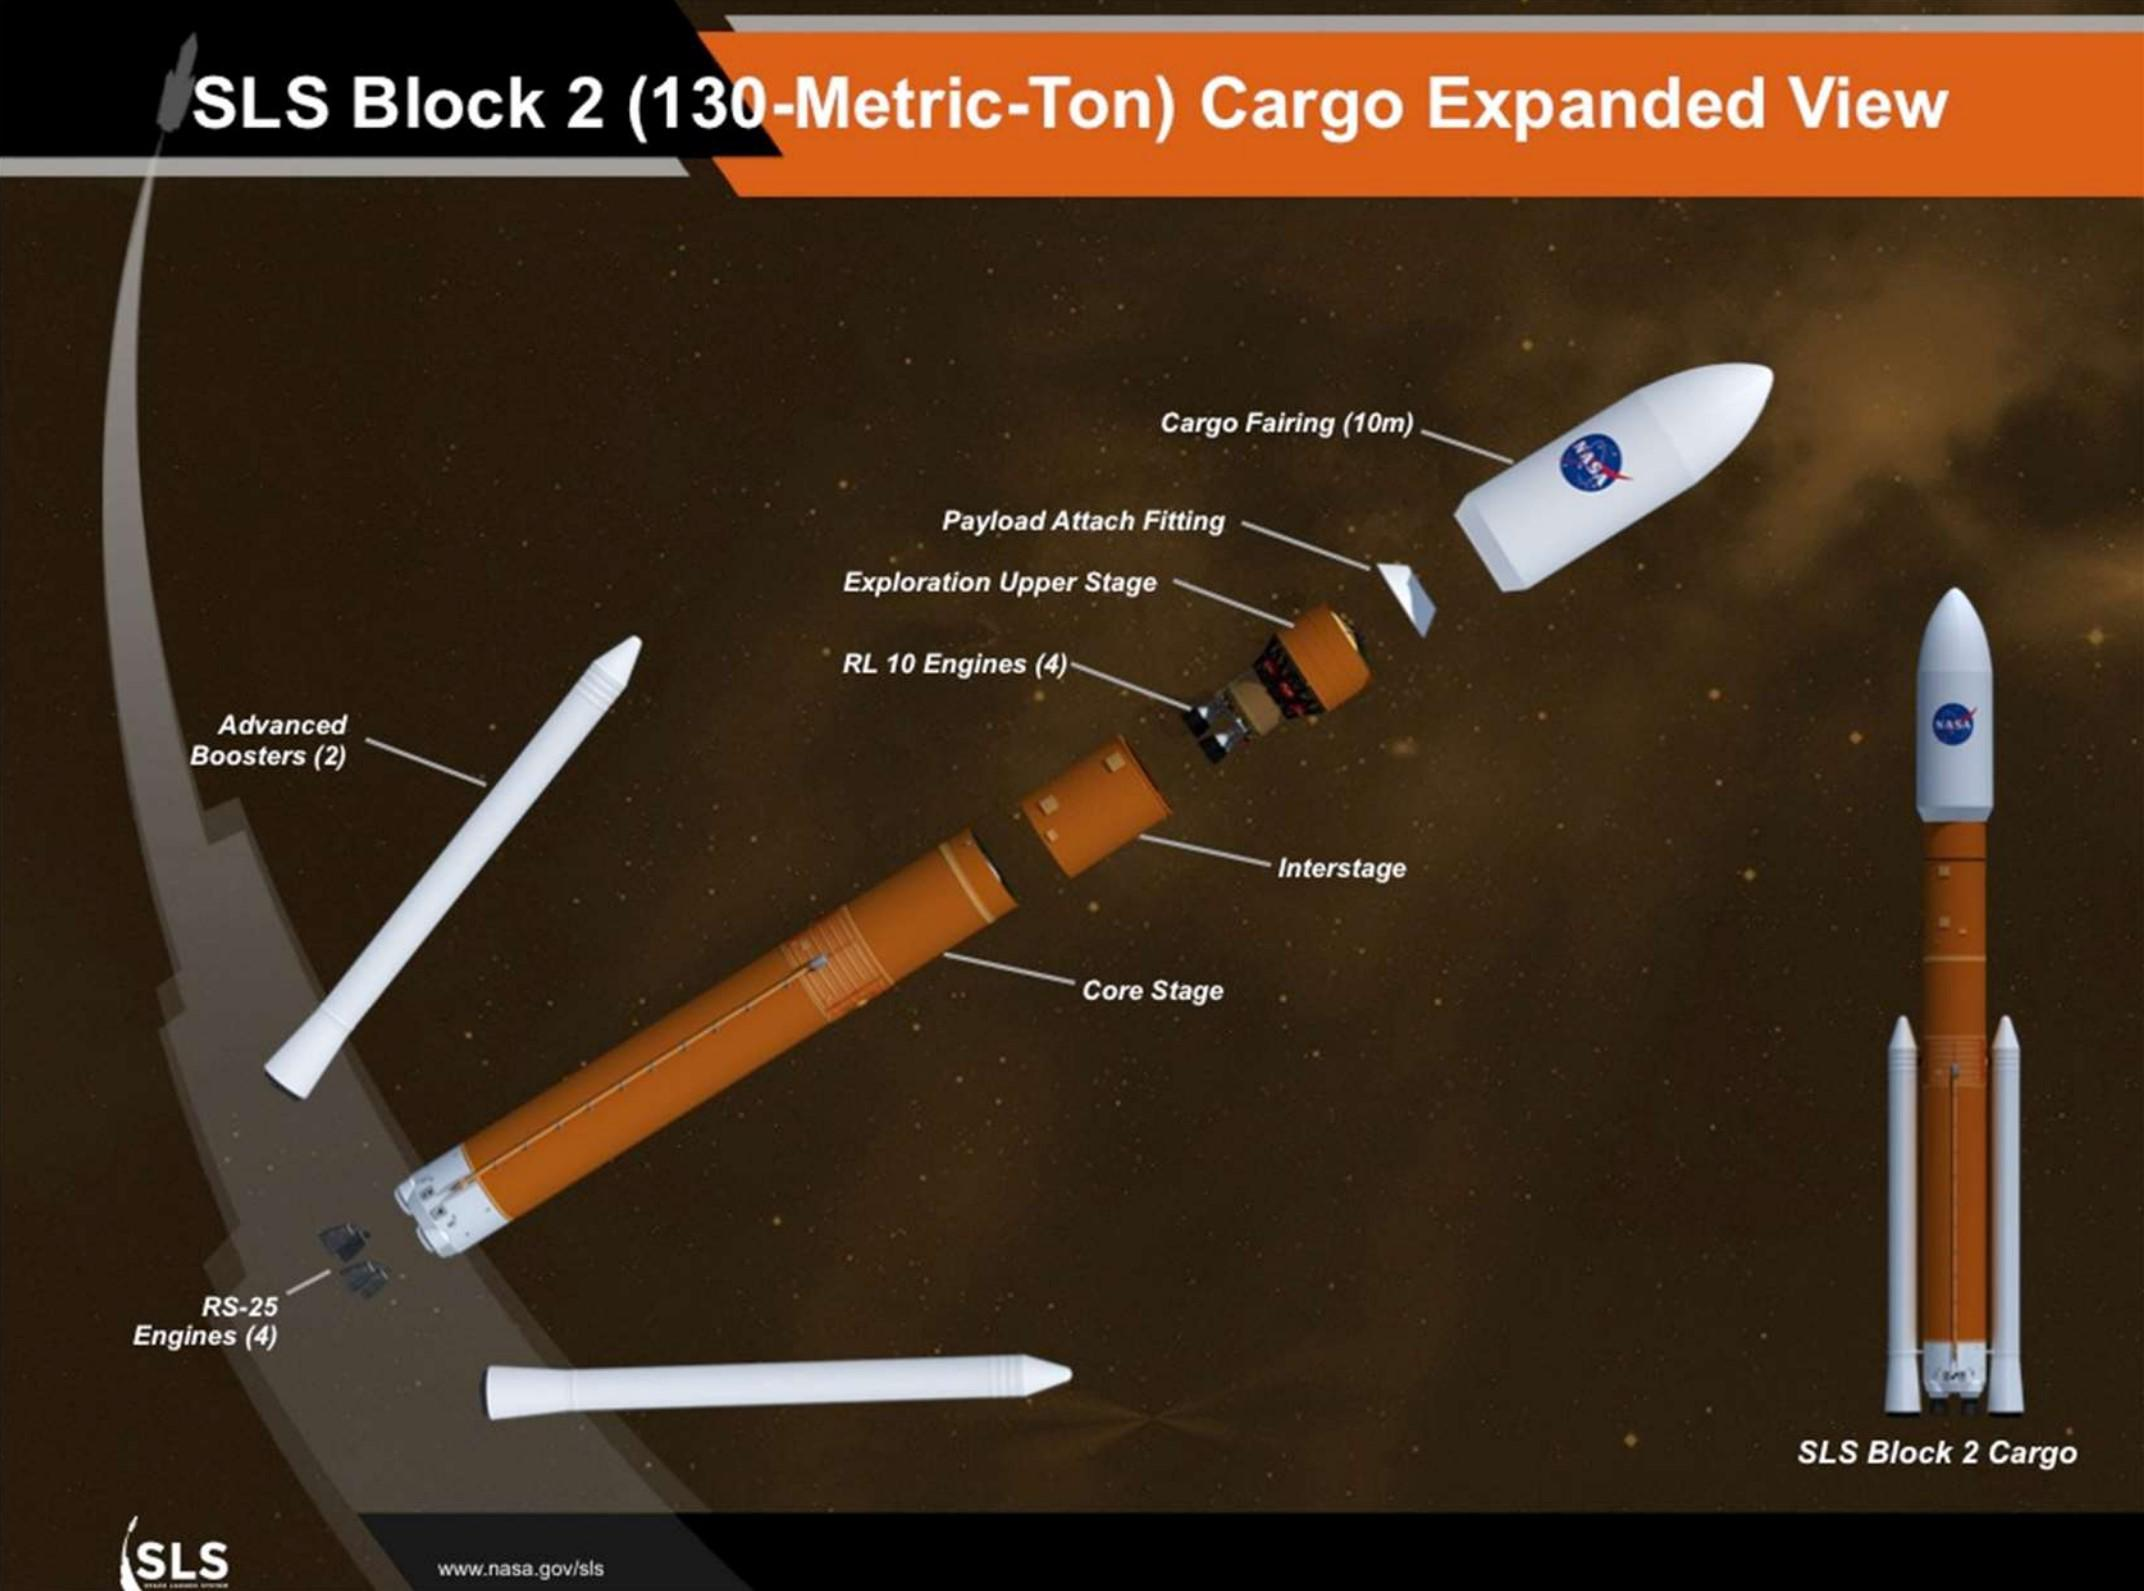 SLS Block 2 exploded view (NASA)